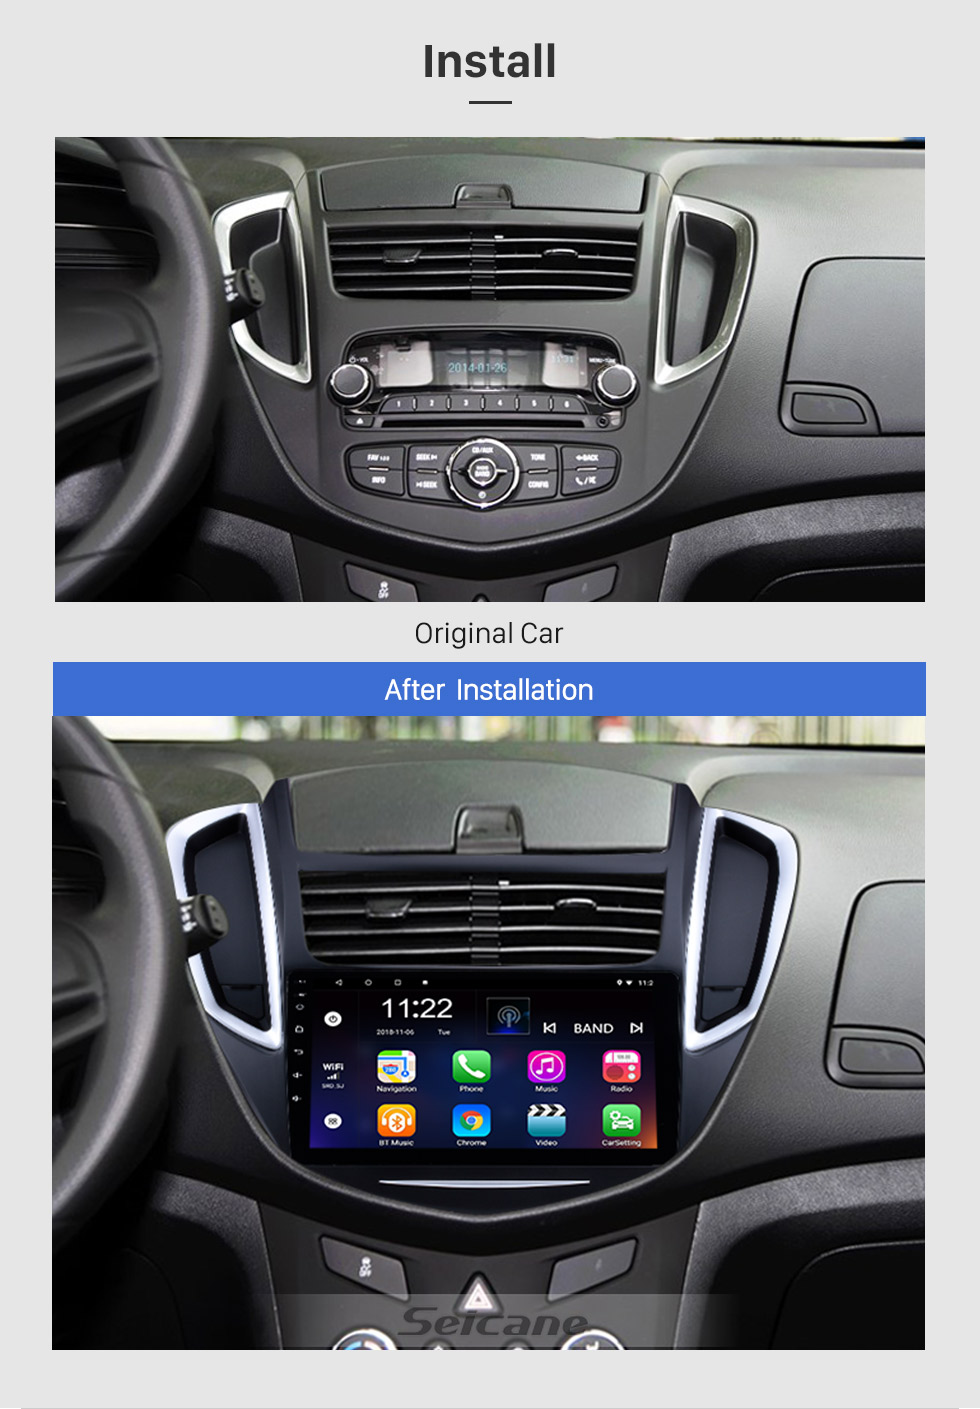 Seicane 2014-2016 Chevy Chevrolet Trax 9 Zoll HD Touchscreen Android 8.1 Bluetooth GPS-Navigationssystem Radio Unterstützung Lenkradsteuerung Rückfahrkamera 3G Wlan Spiegel-Verbindung DVR TPMS